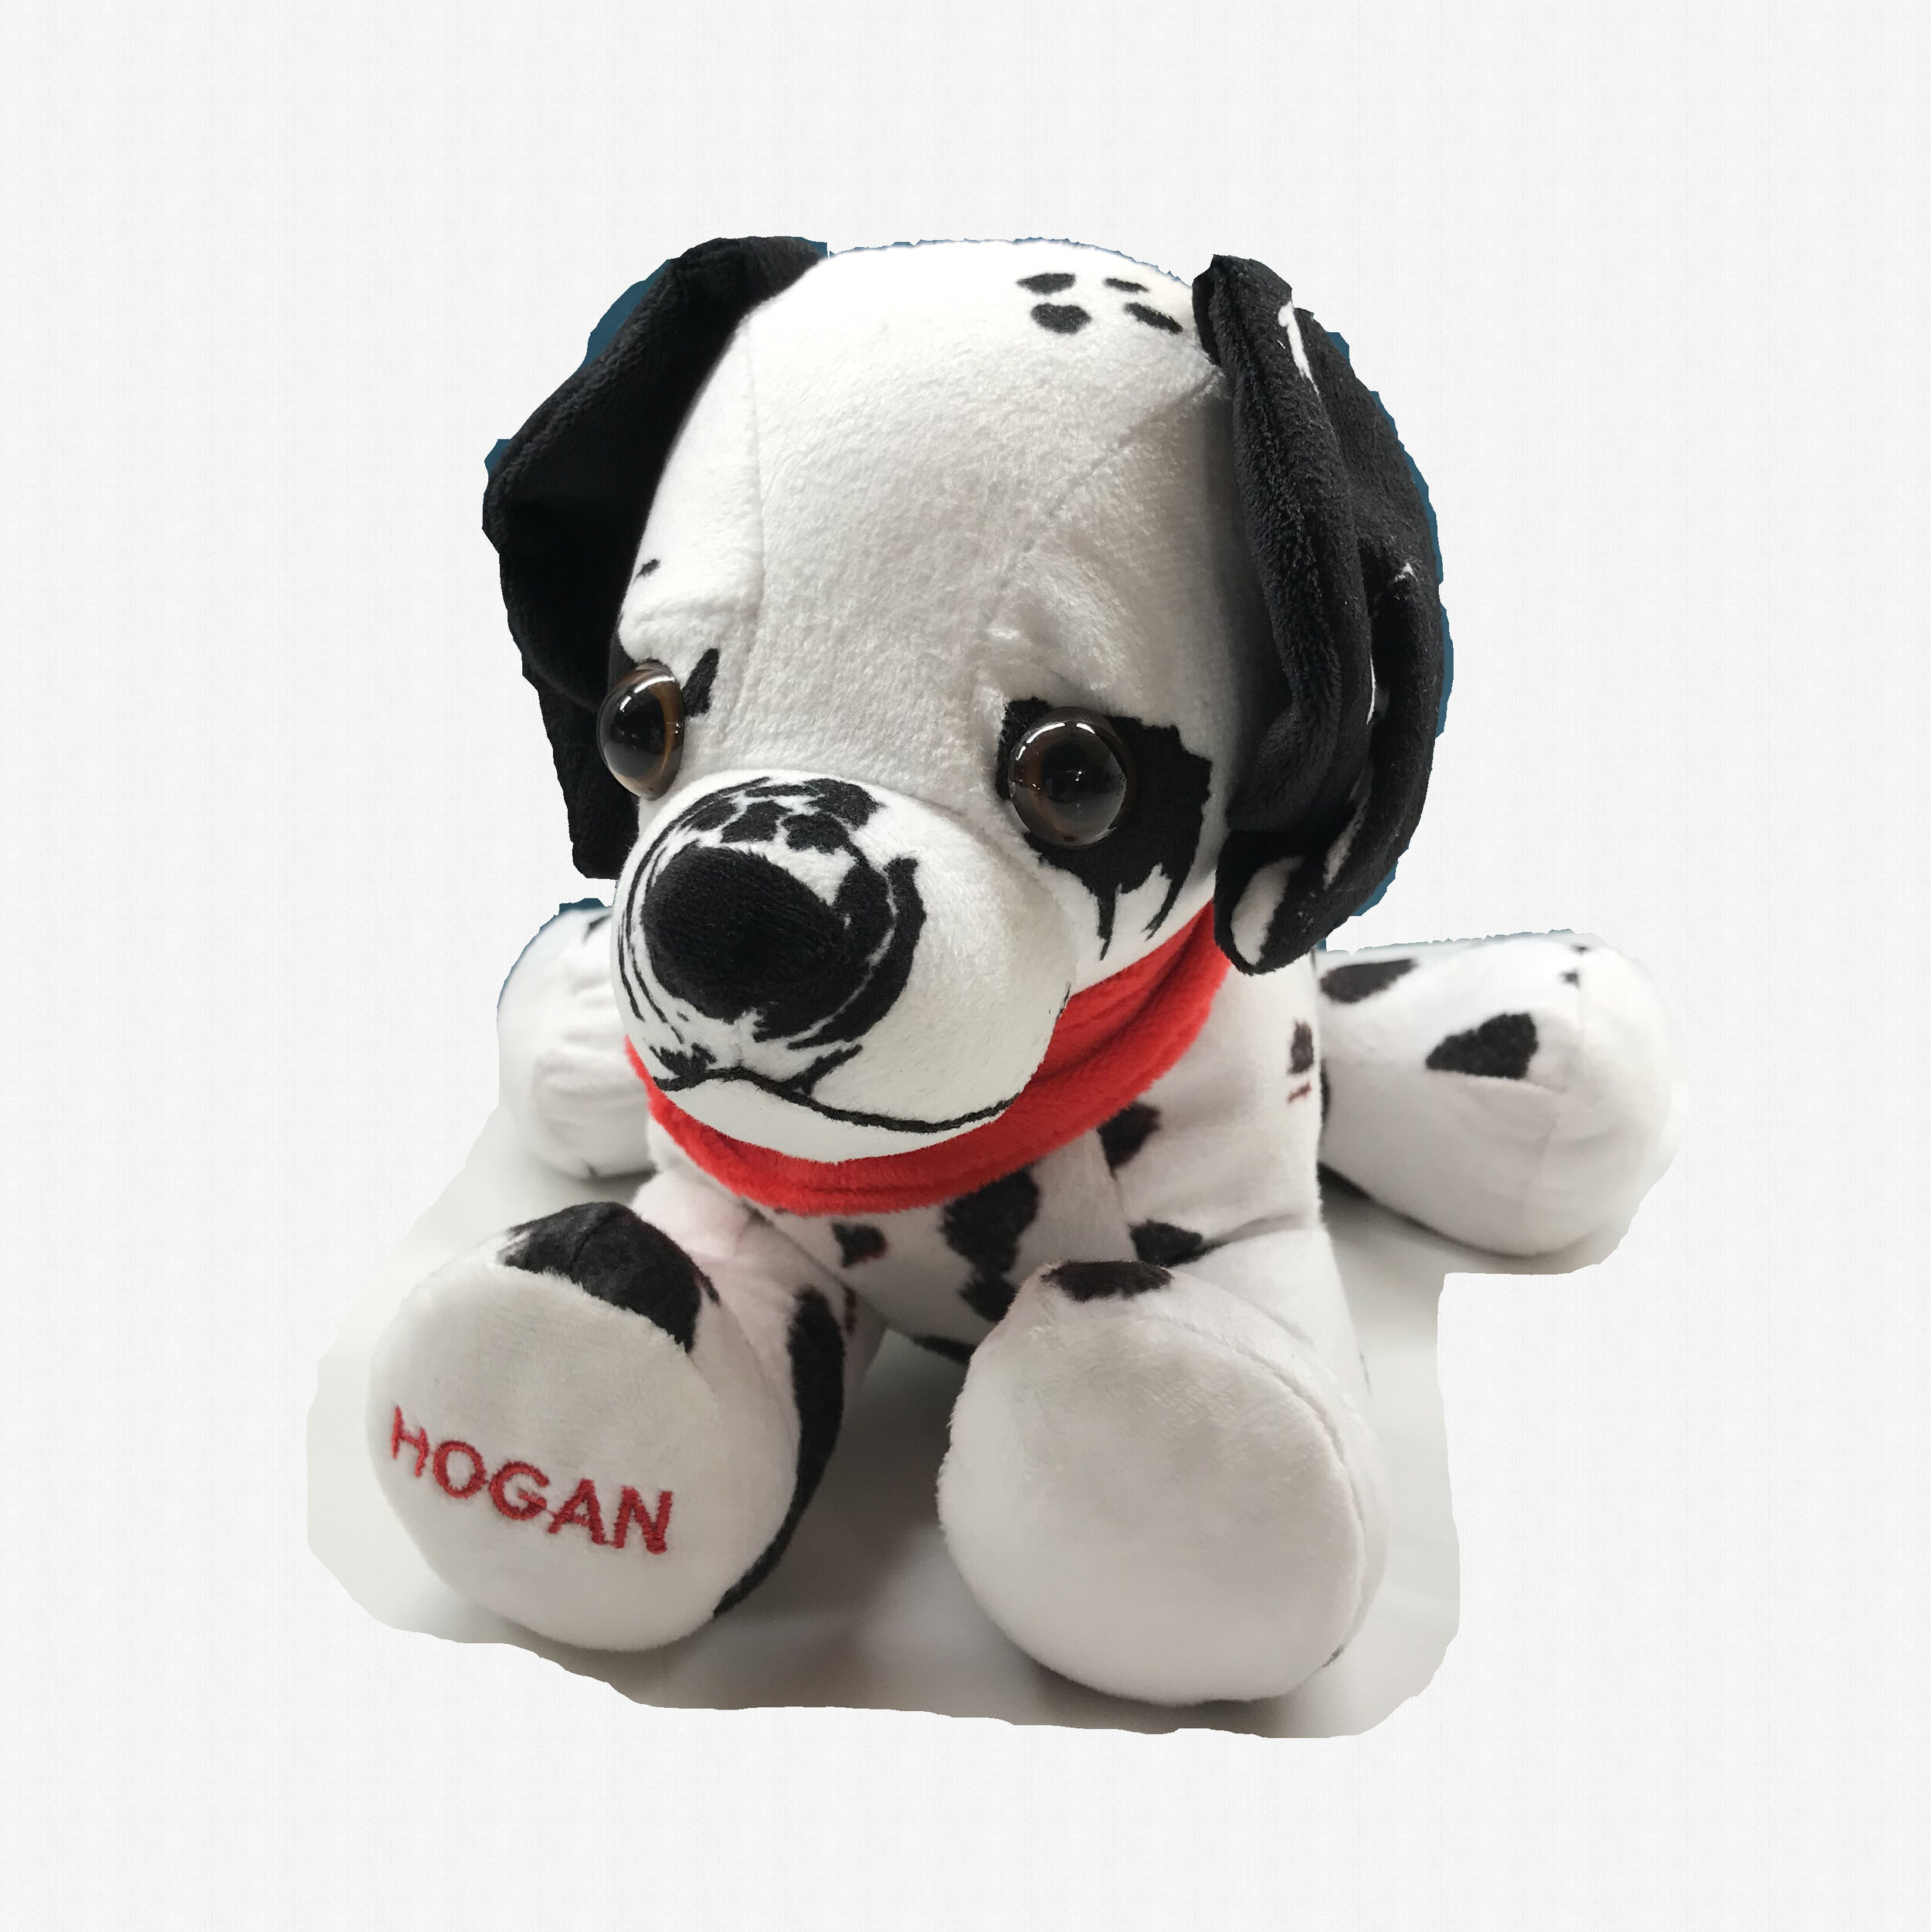 A personalized book and stuffed toy make fabulous gifts! The holidays are coming fast!!